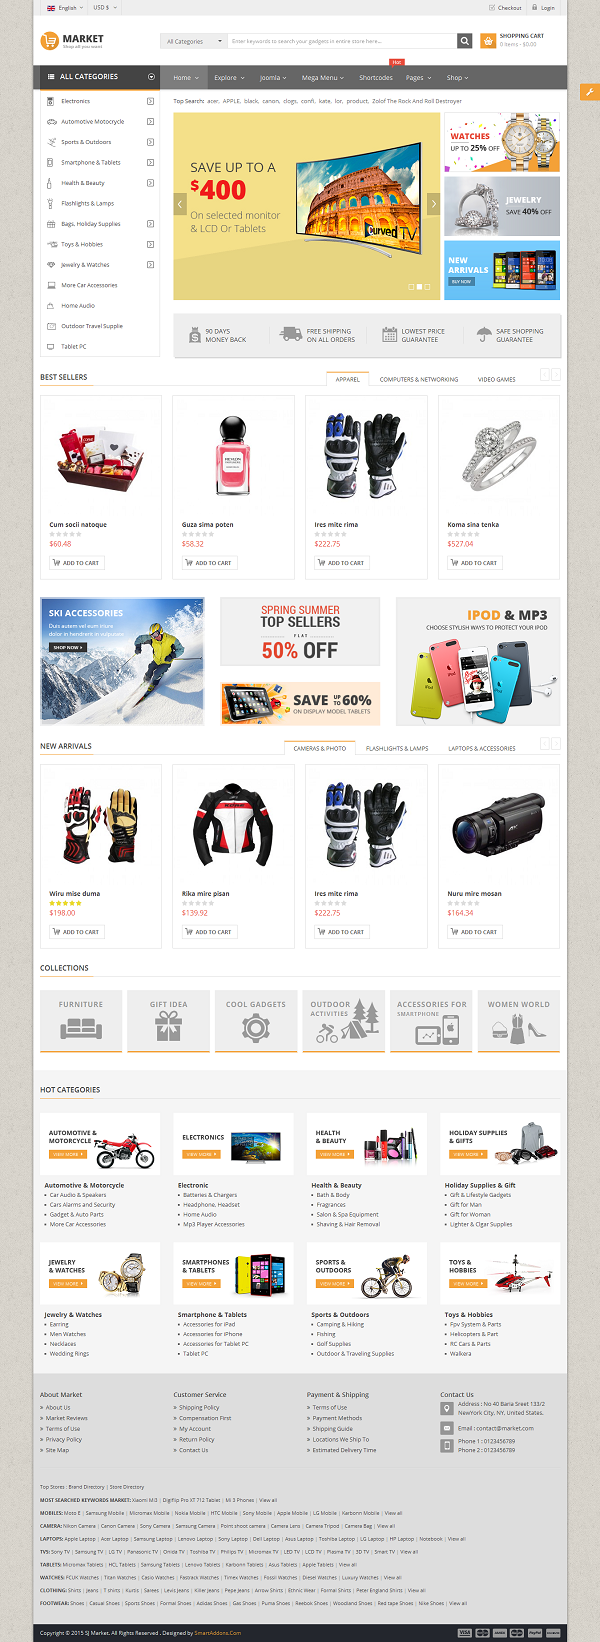 SJ Market - Responsive Joomla eCommerce Template - 09_boxed-layout.png